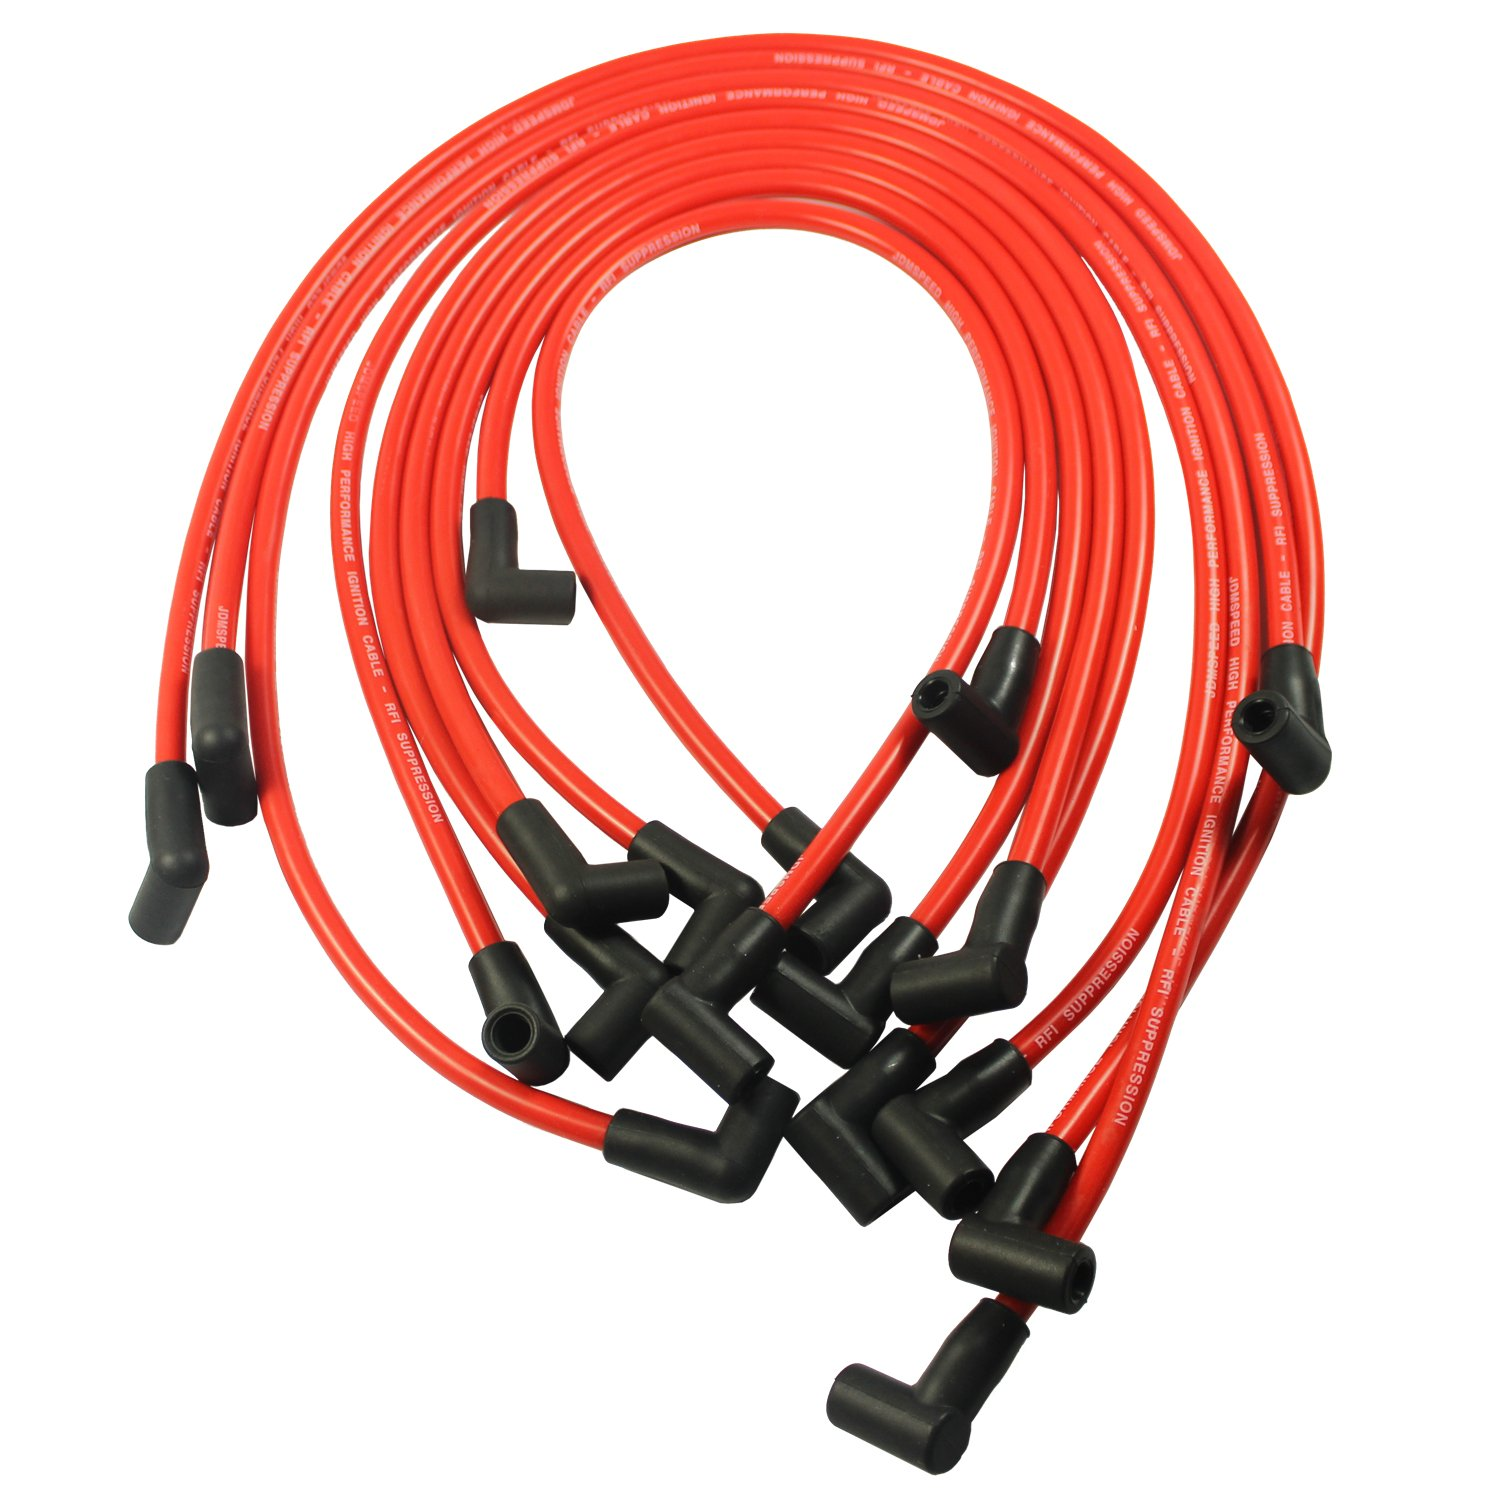 Jdmspeed New 105mm High Performance Spark Plug Wire Set 1993 Jeep Wrangler Distributor Wiring Hei Sbc Bbc 350 383 454 Electronic Automotive